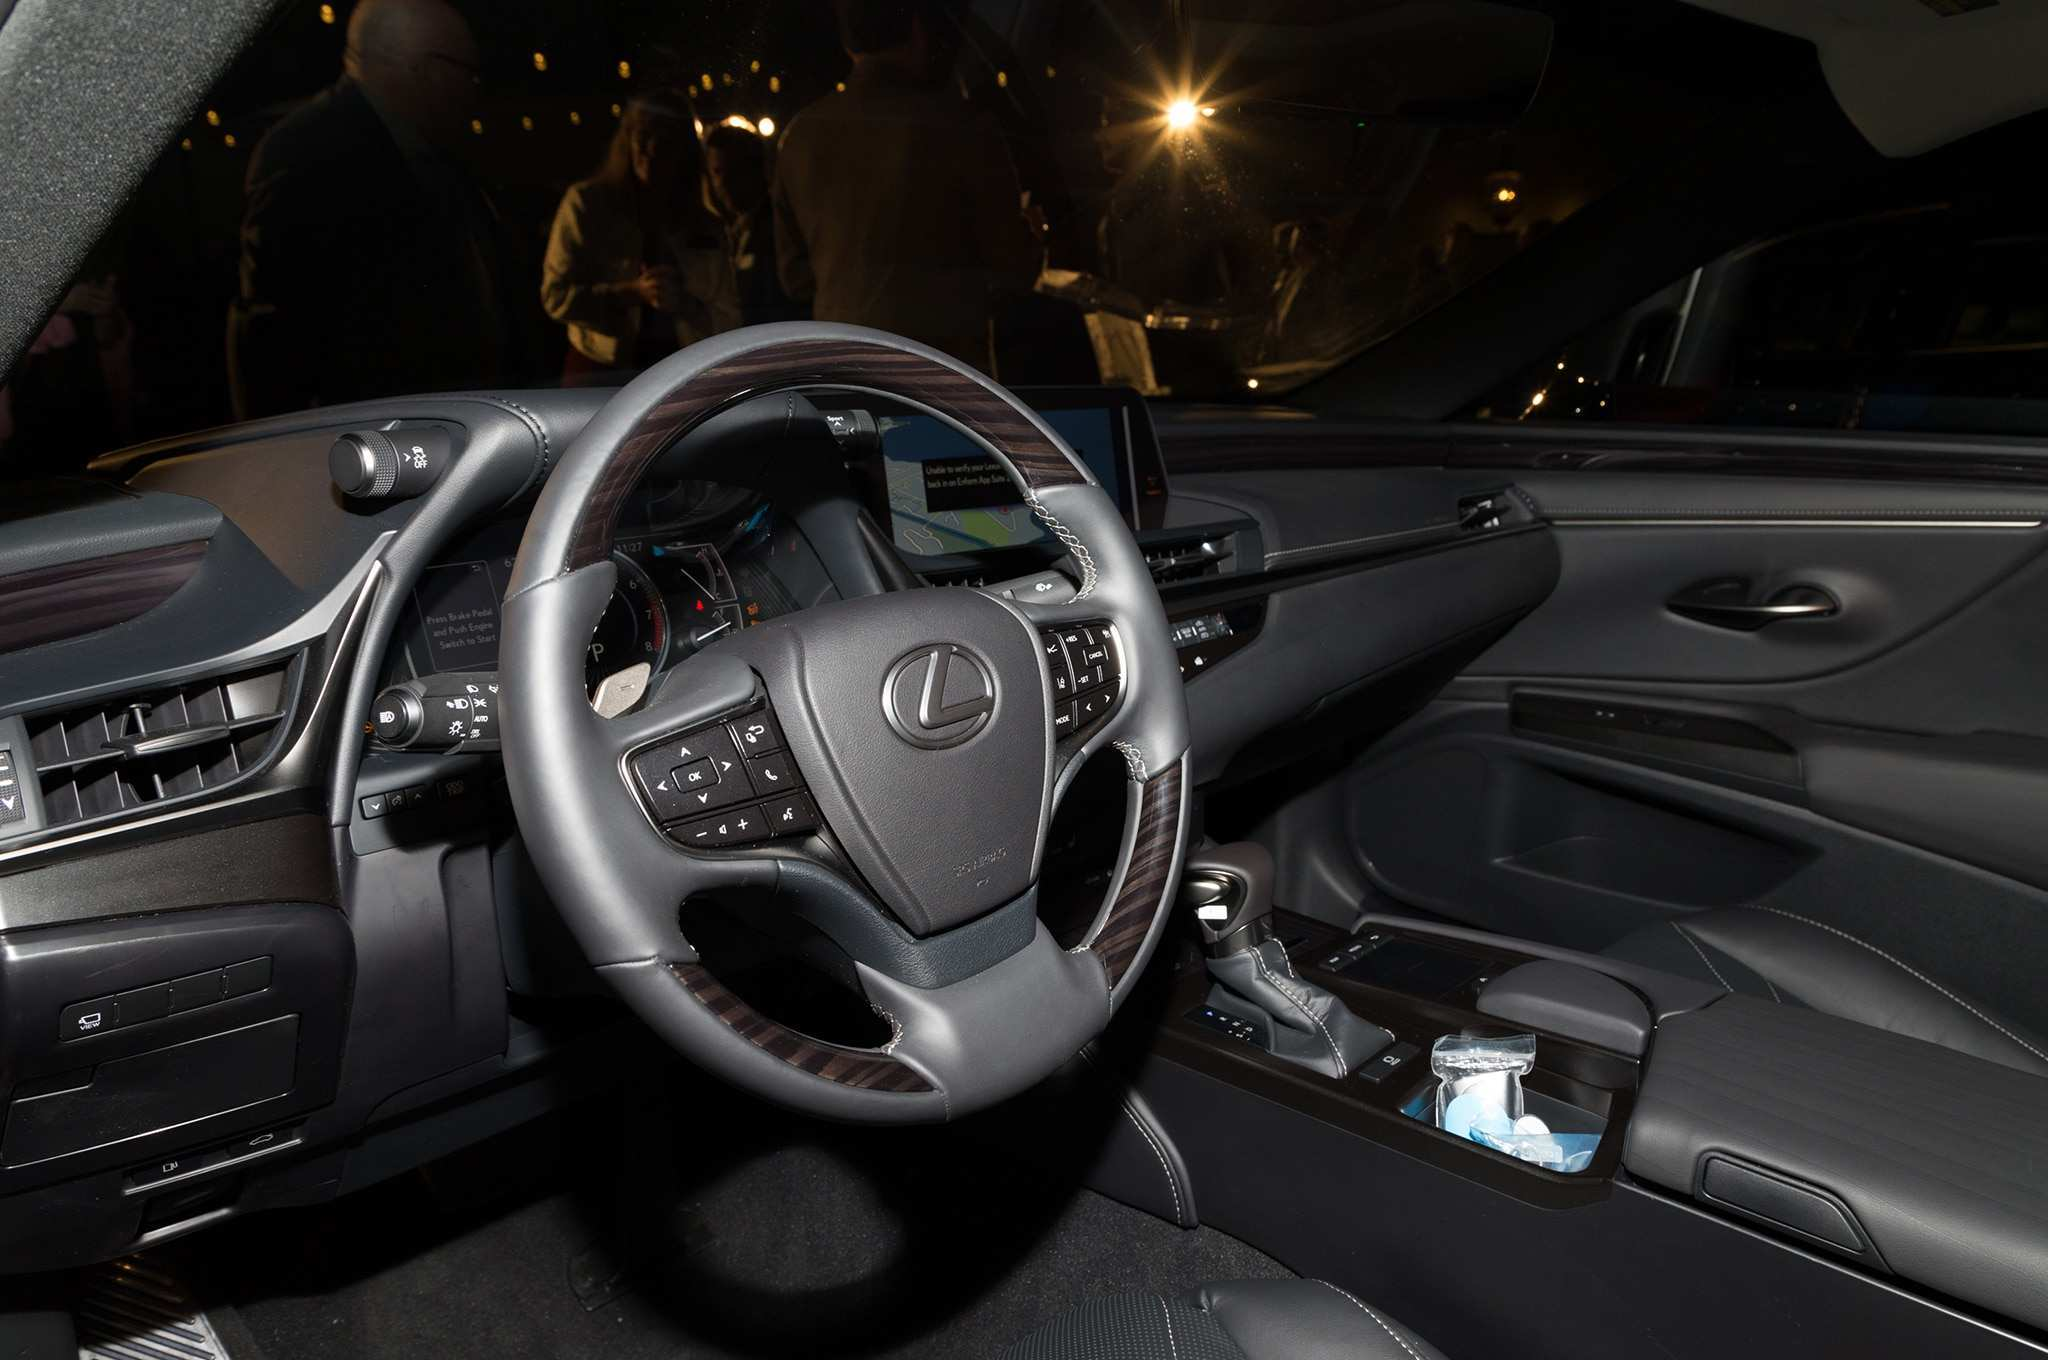 76 Concept of 2019 Lexus Es Interior Redesign by 2019 Lexus Es Interior